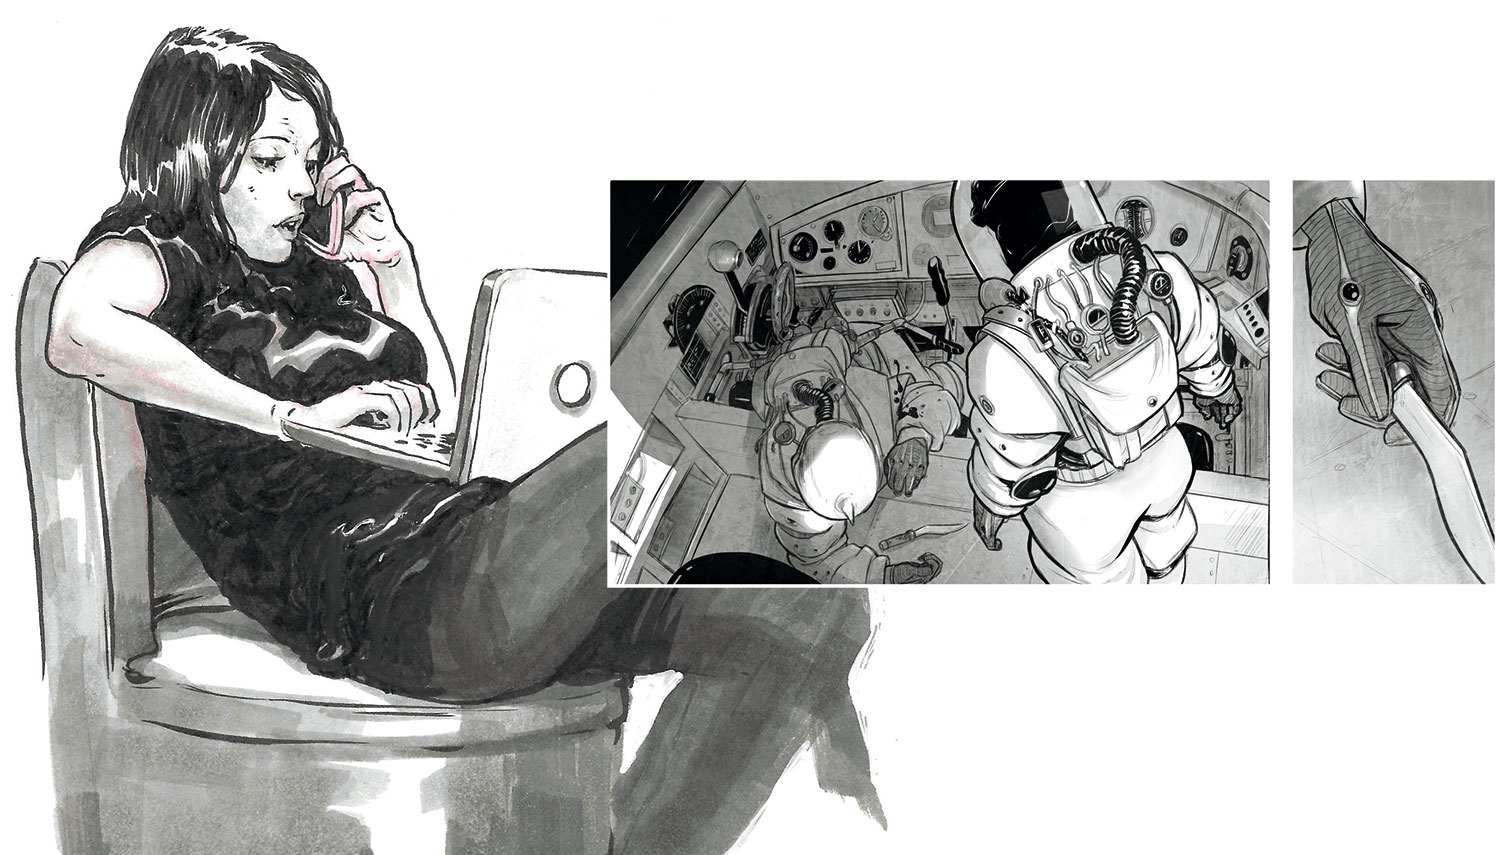 Woman reclining on a chair with her laptop, a spaceman in a ship, a hand grasping a wand